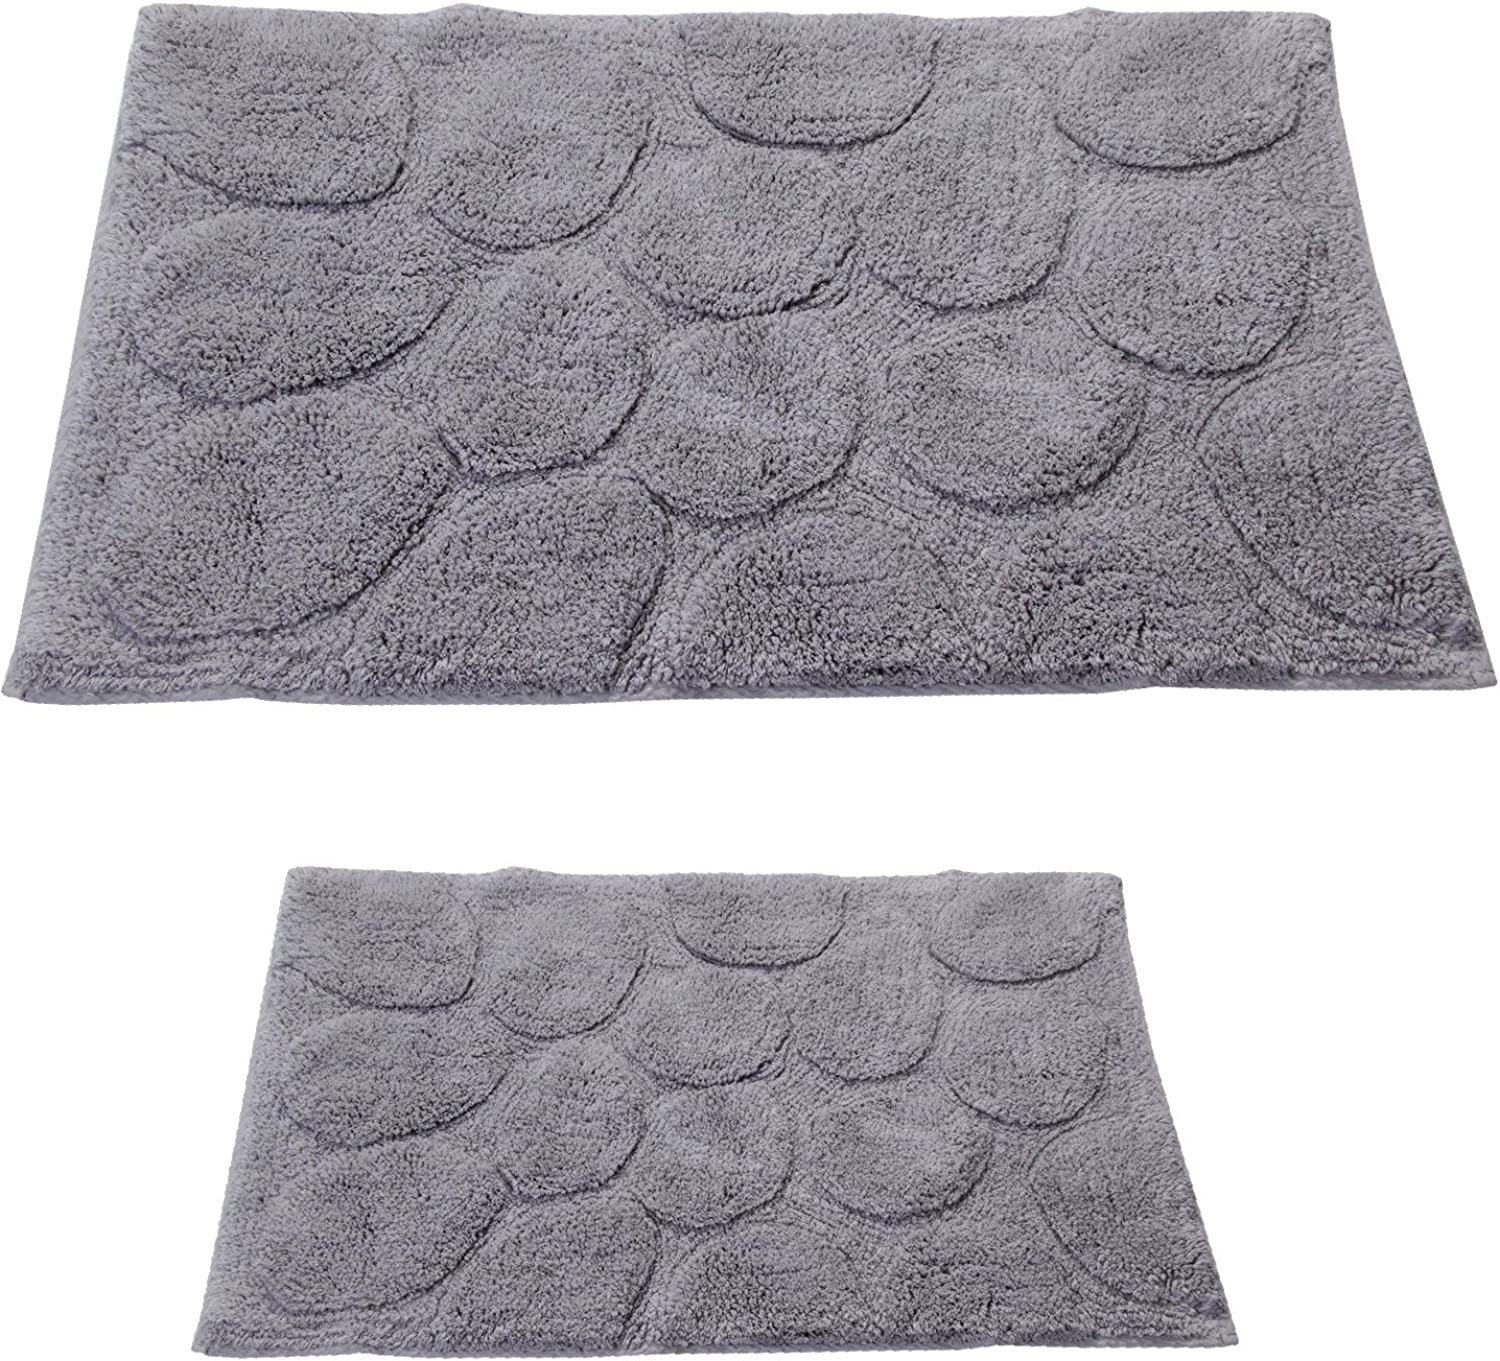 Castle Hill 2-Piece Palm Bath Rug, Silver, 17 by 24-Inch and 24 by 40-Inch